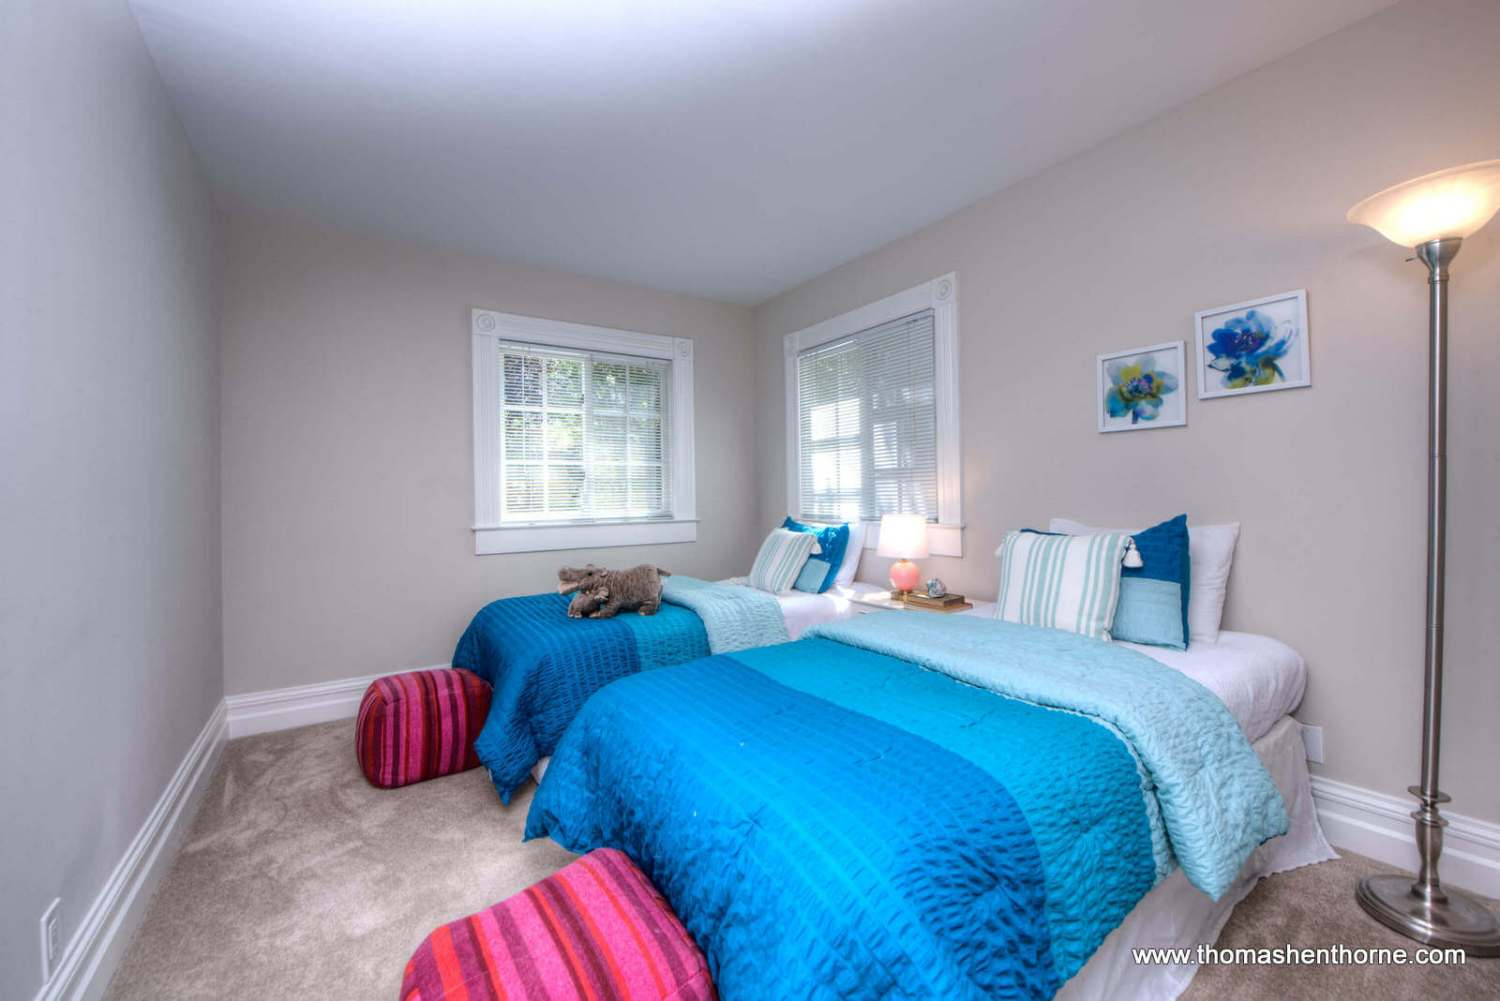 photo of bedroom with blue bedspreads and two beds